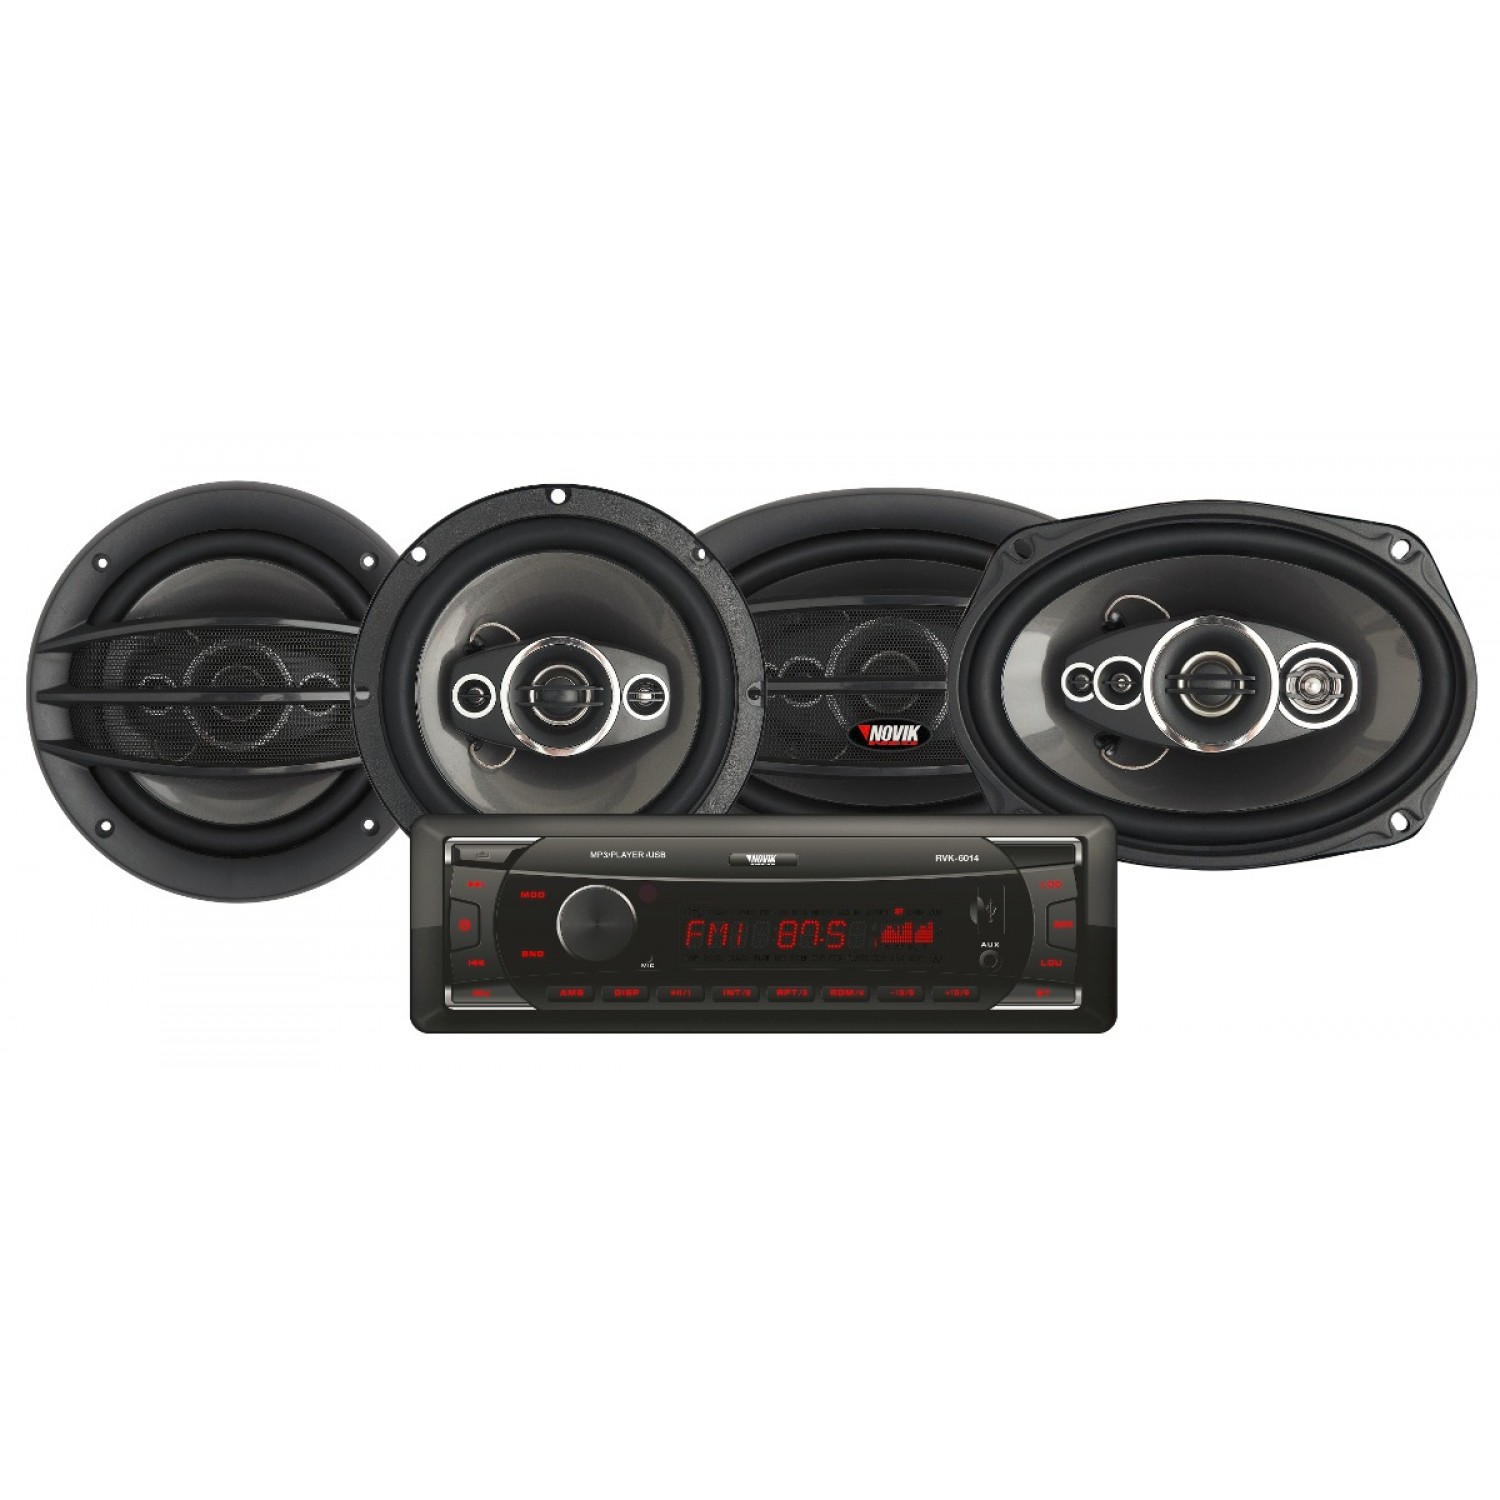 Kit Radio Automotivo com MP3 USB + 2 Alto Falantes de 6 NVK 314 Novik Neo